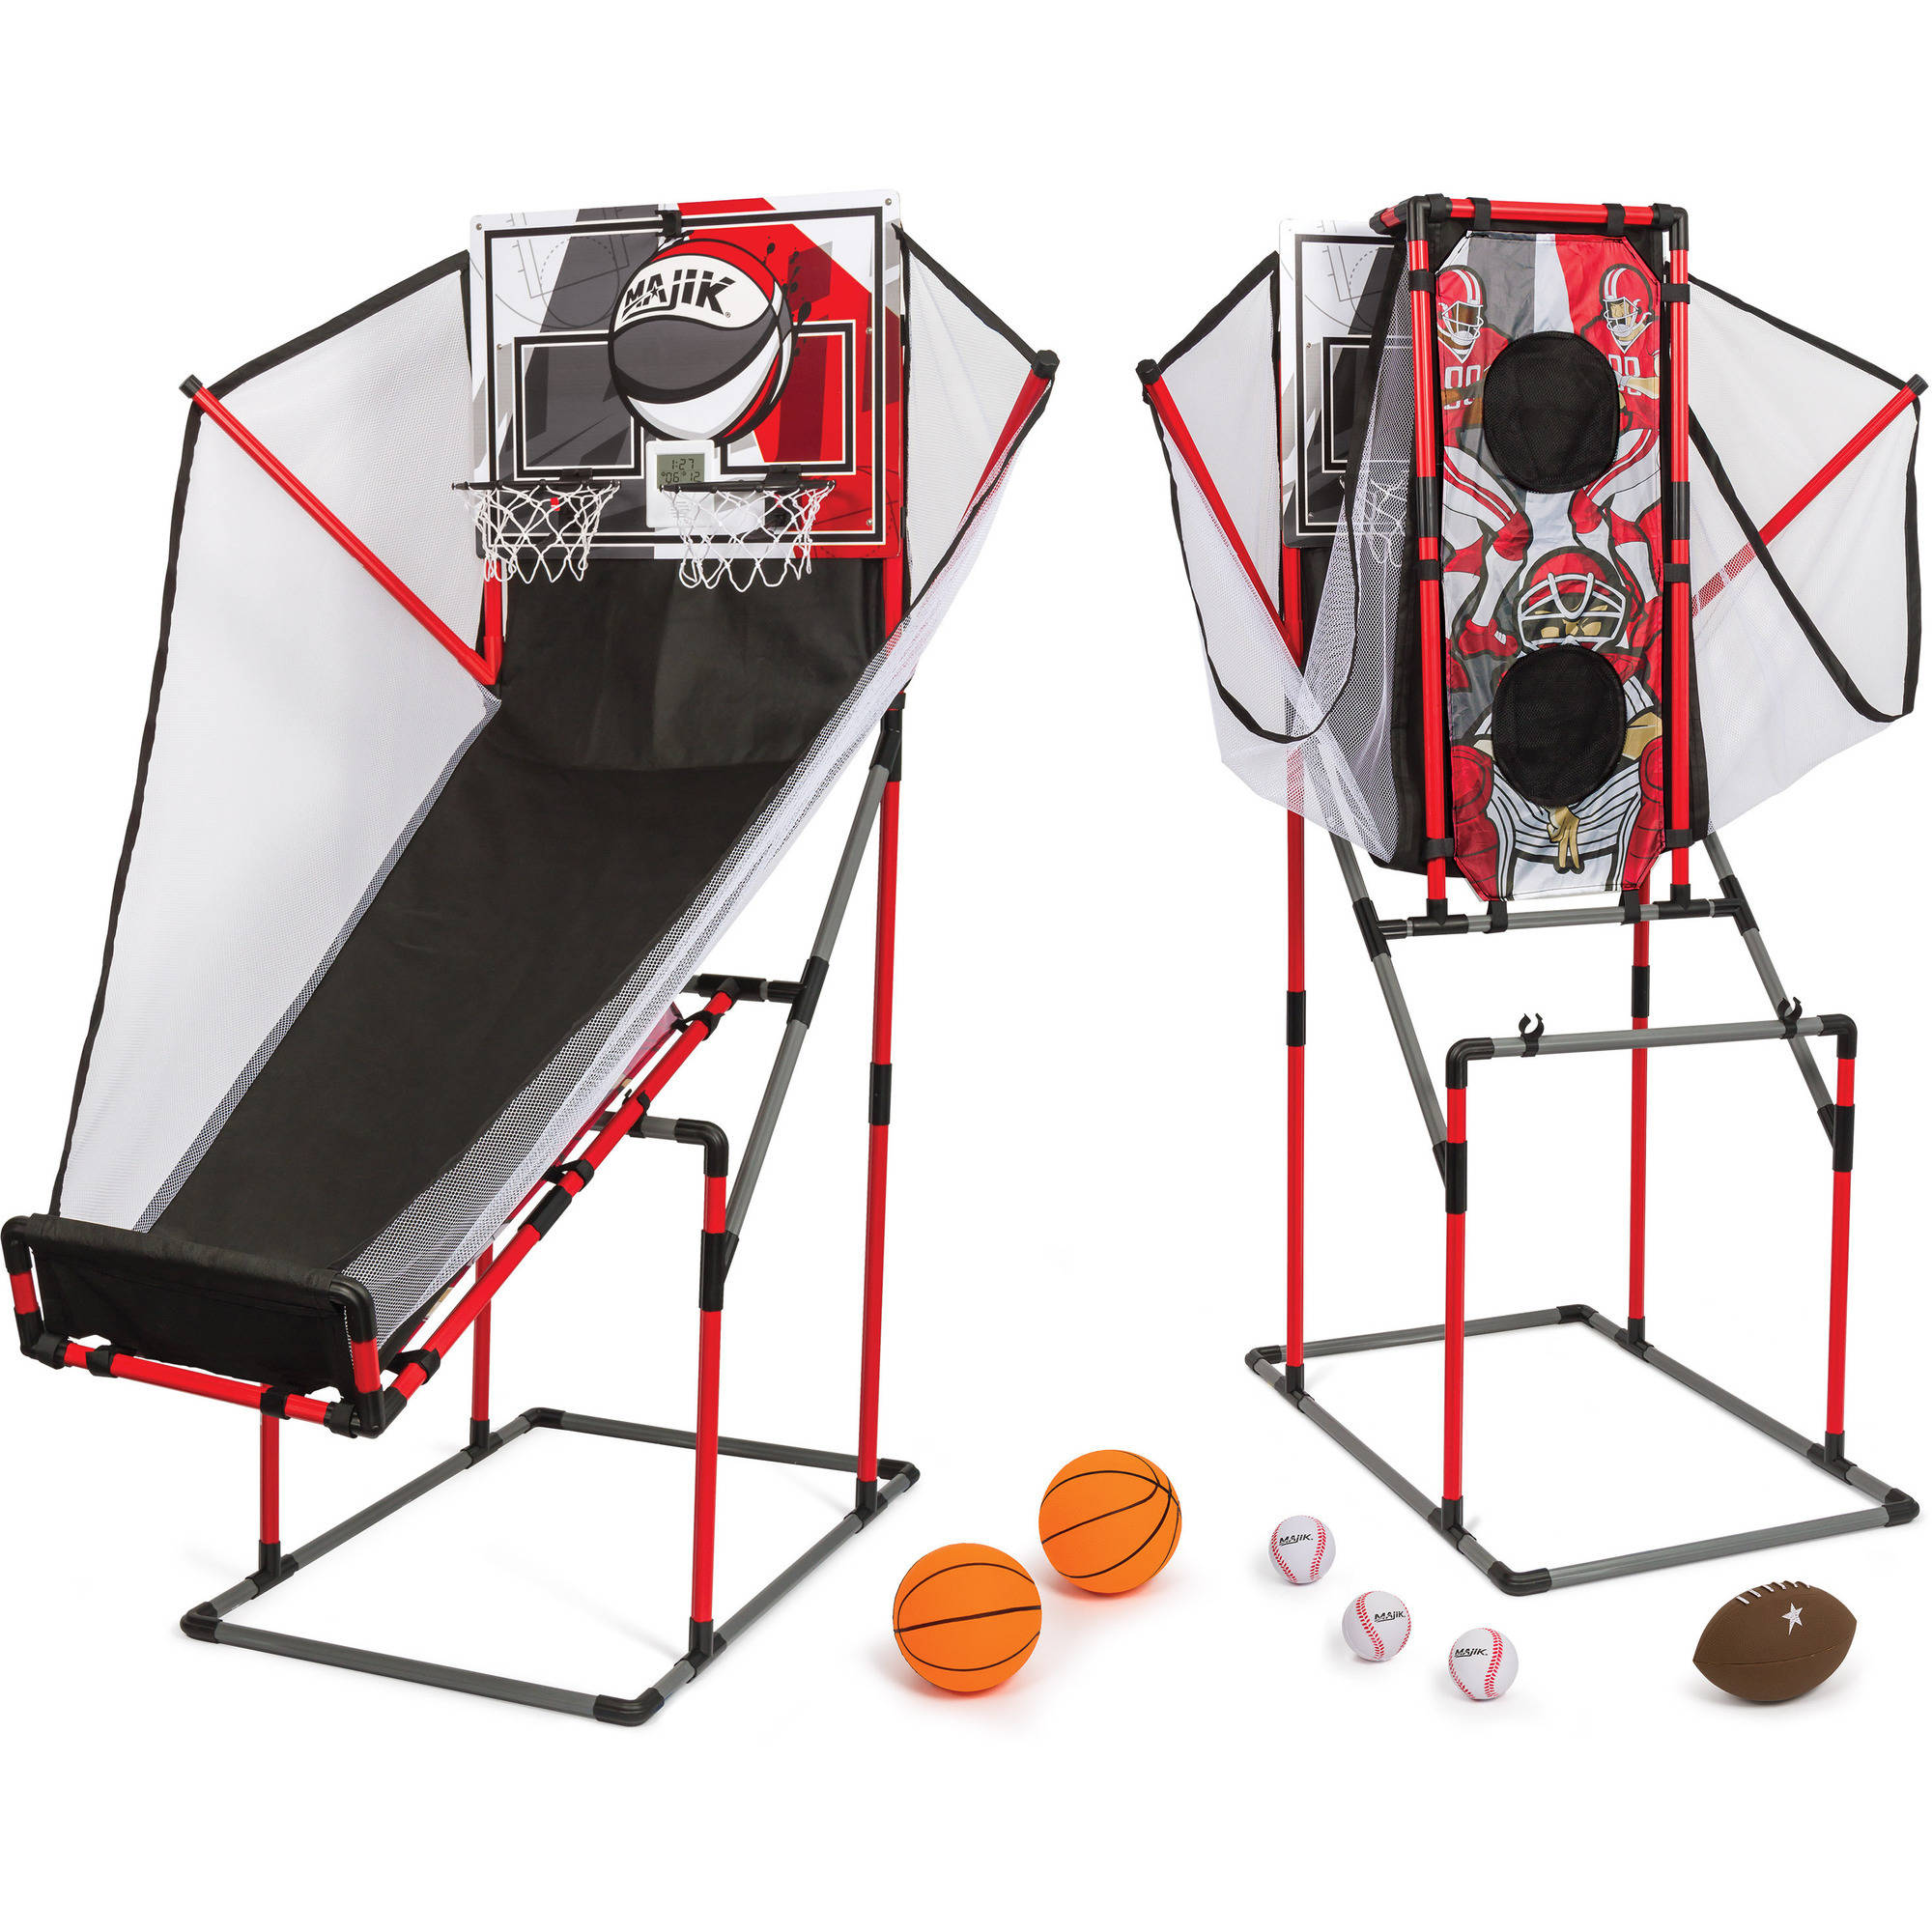 Majik 3-in-1 Arcade Sport Center, Basketball, Football, & Baseball